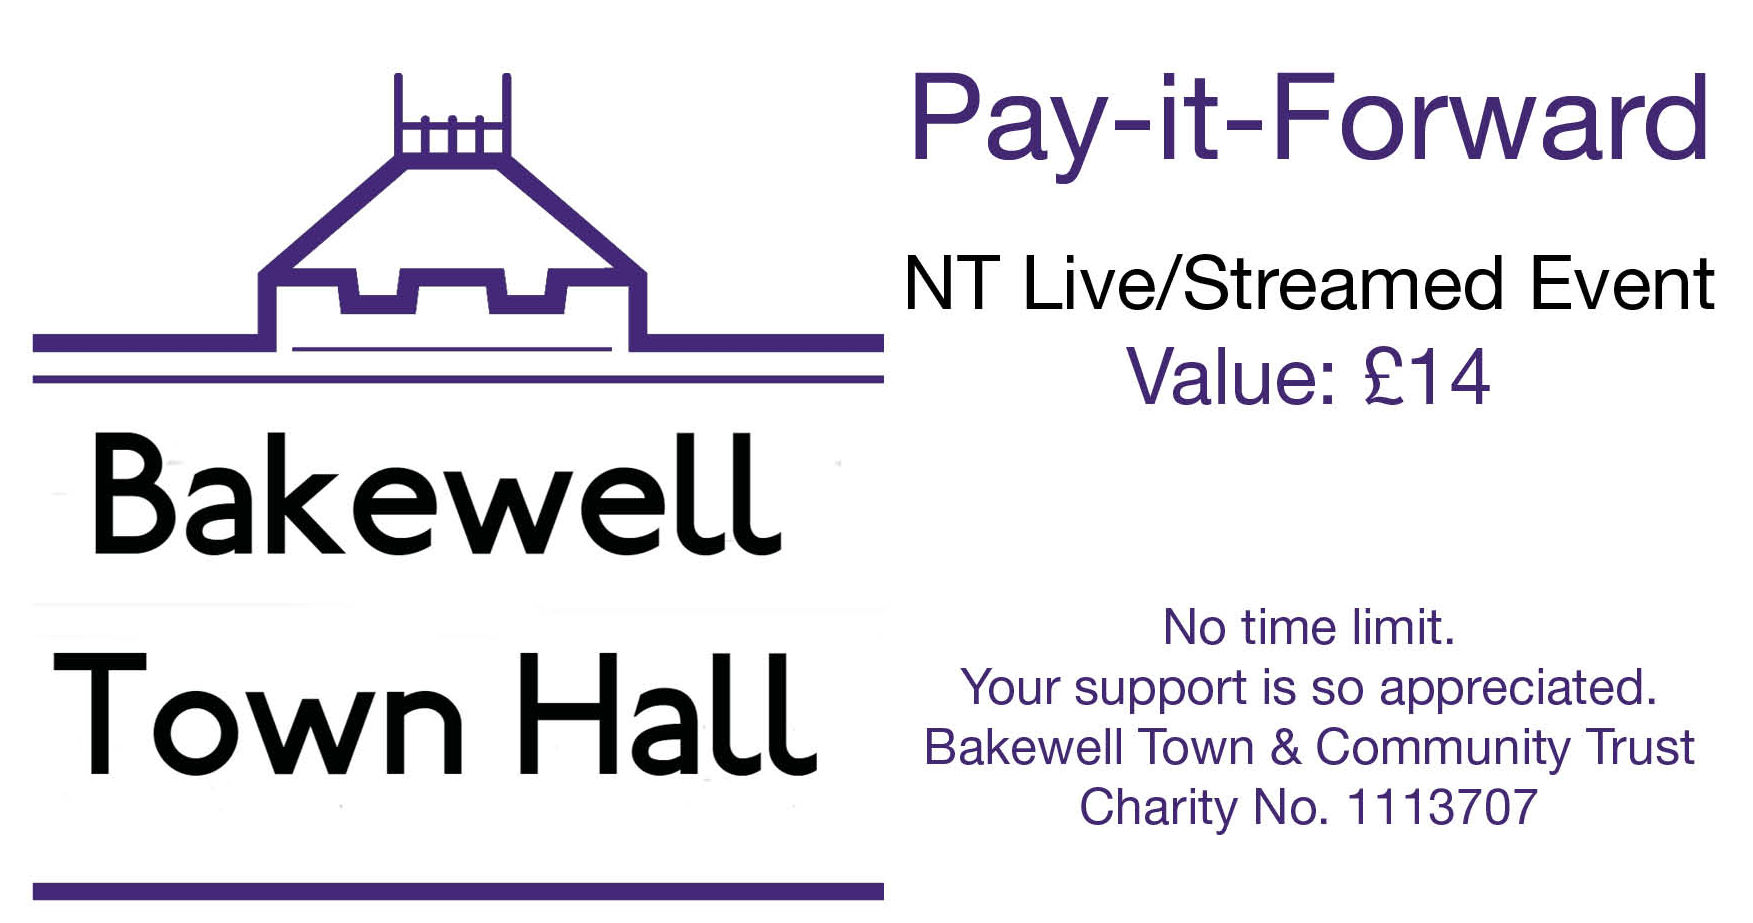 Pay-it-Forward NT Live Tickets